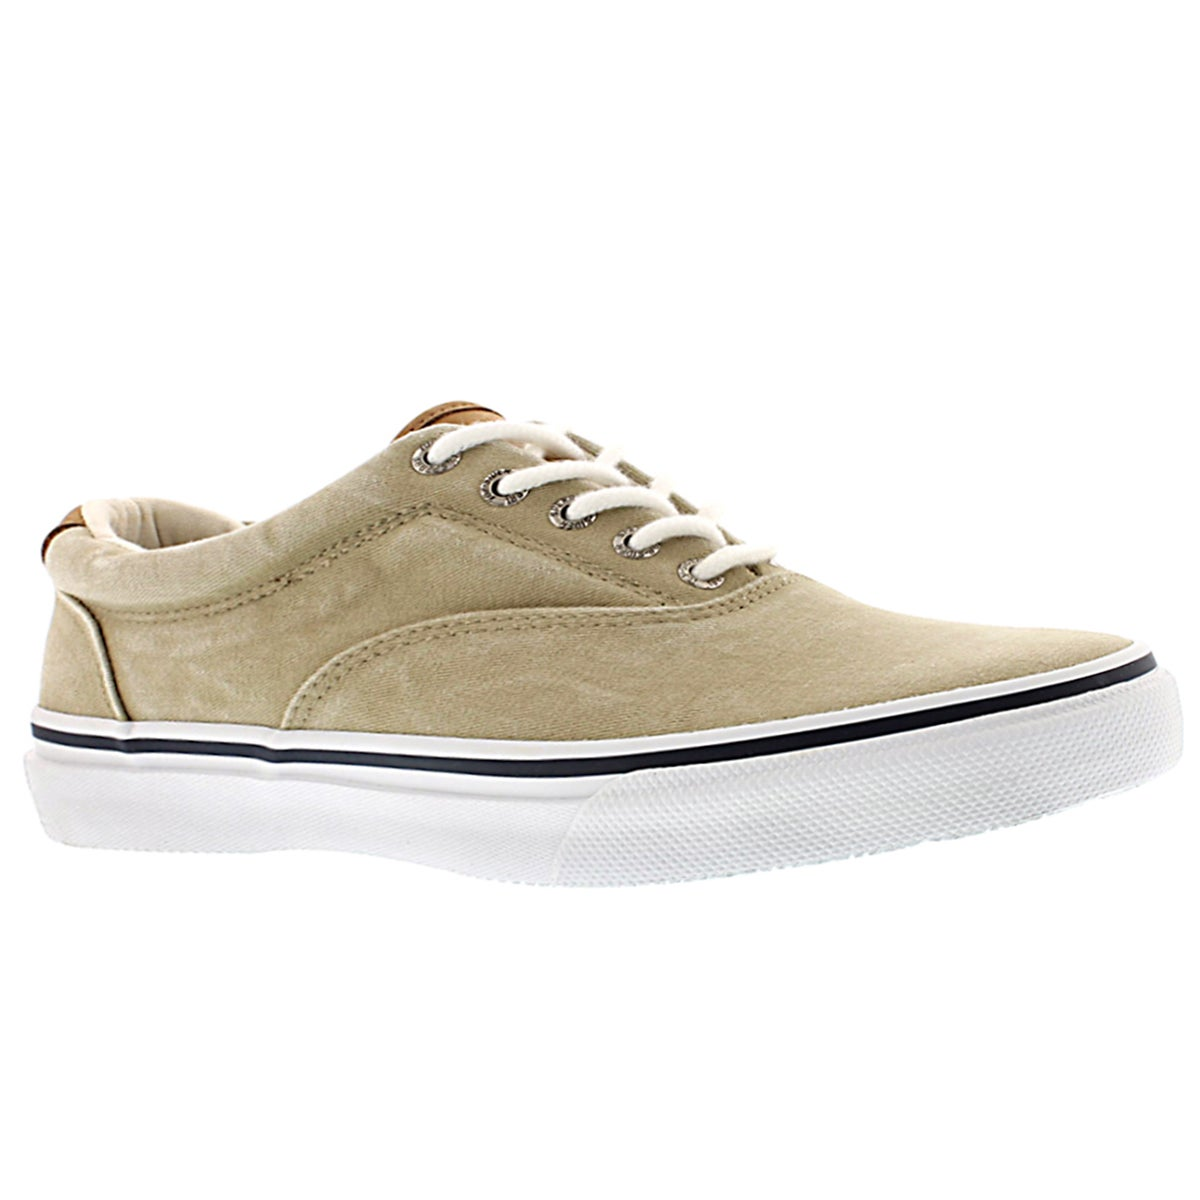 Men's STRIPER CVO SALT WASHED TWILL chino shoes